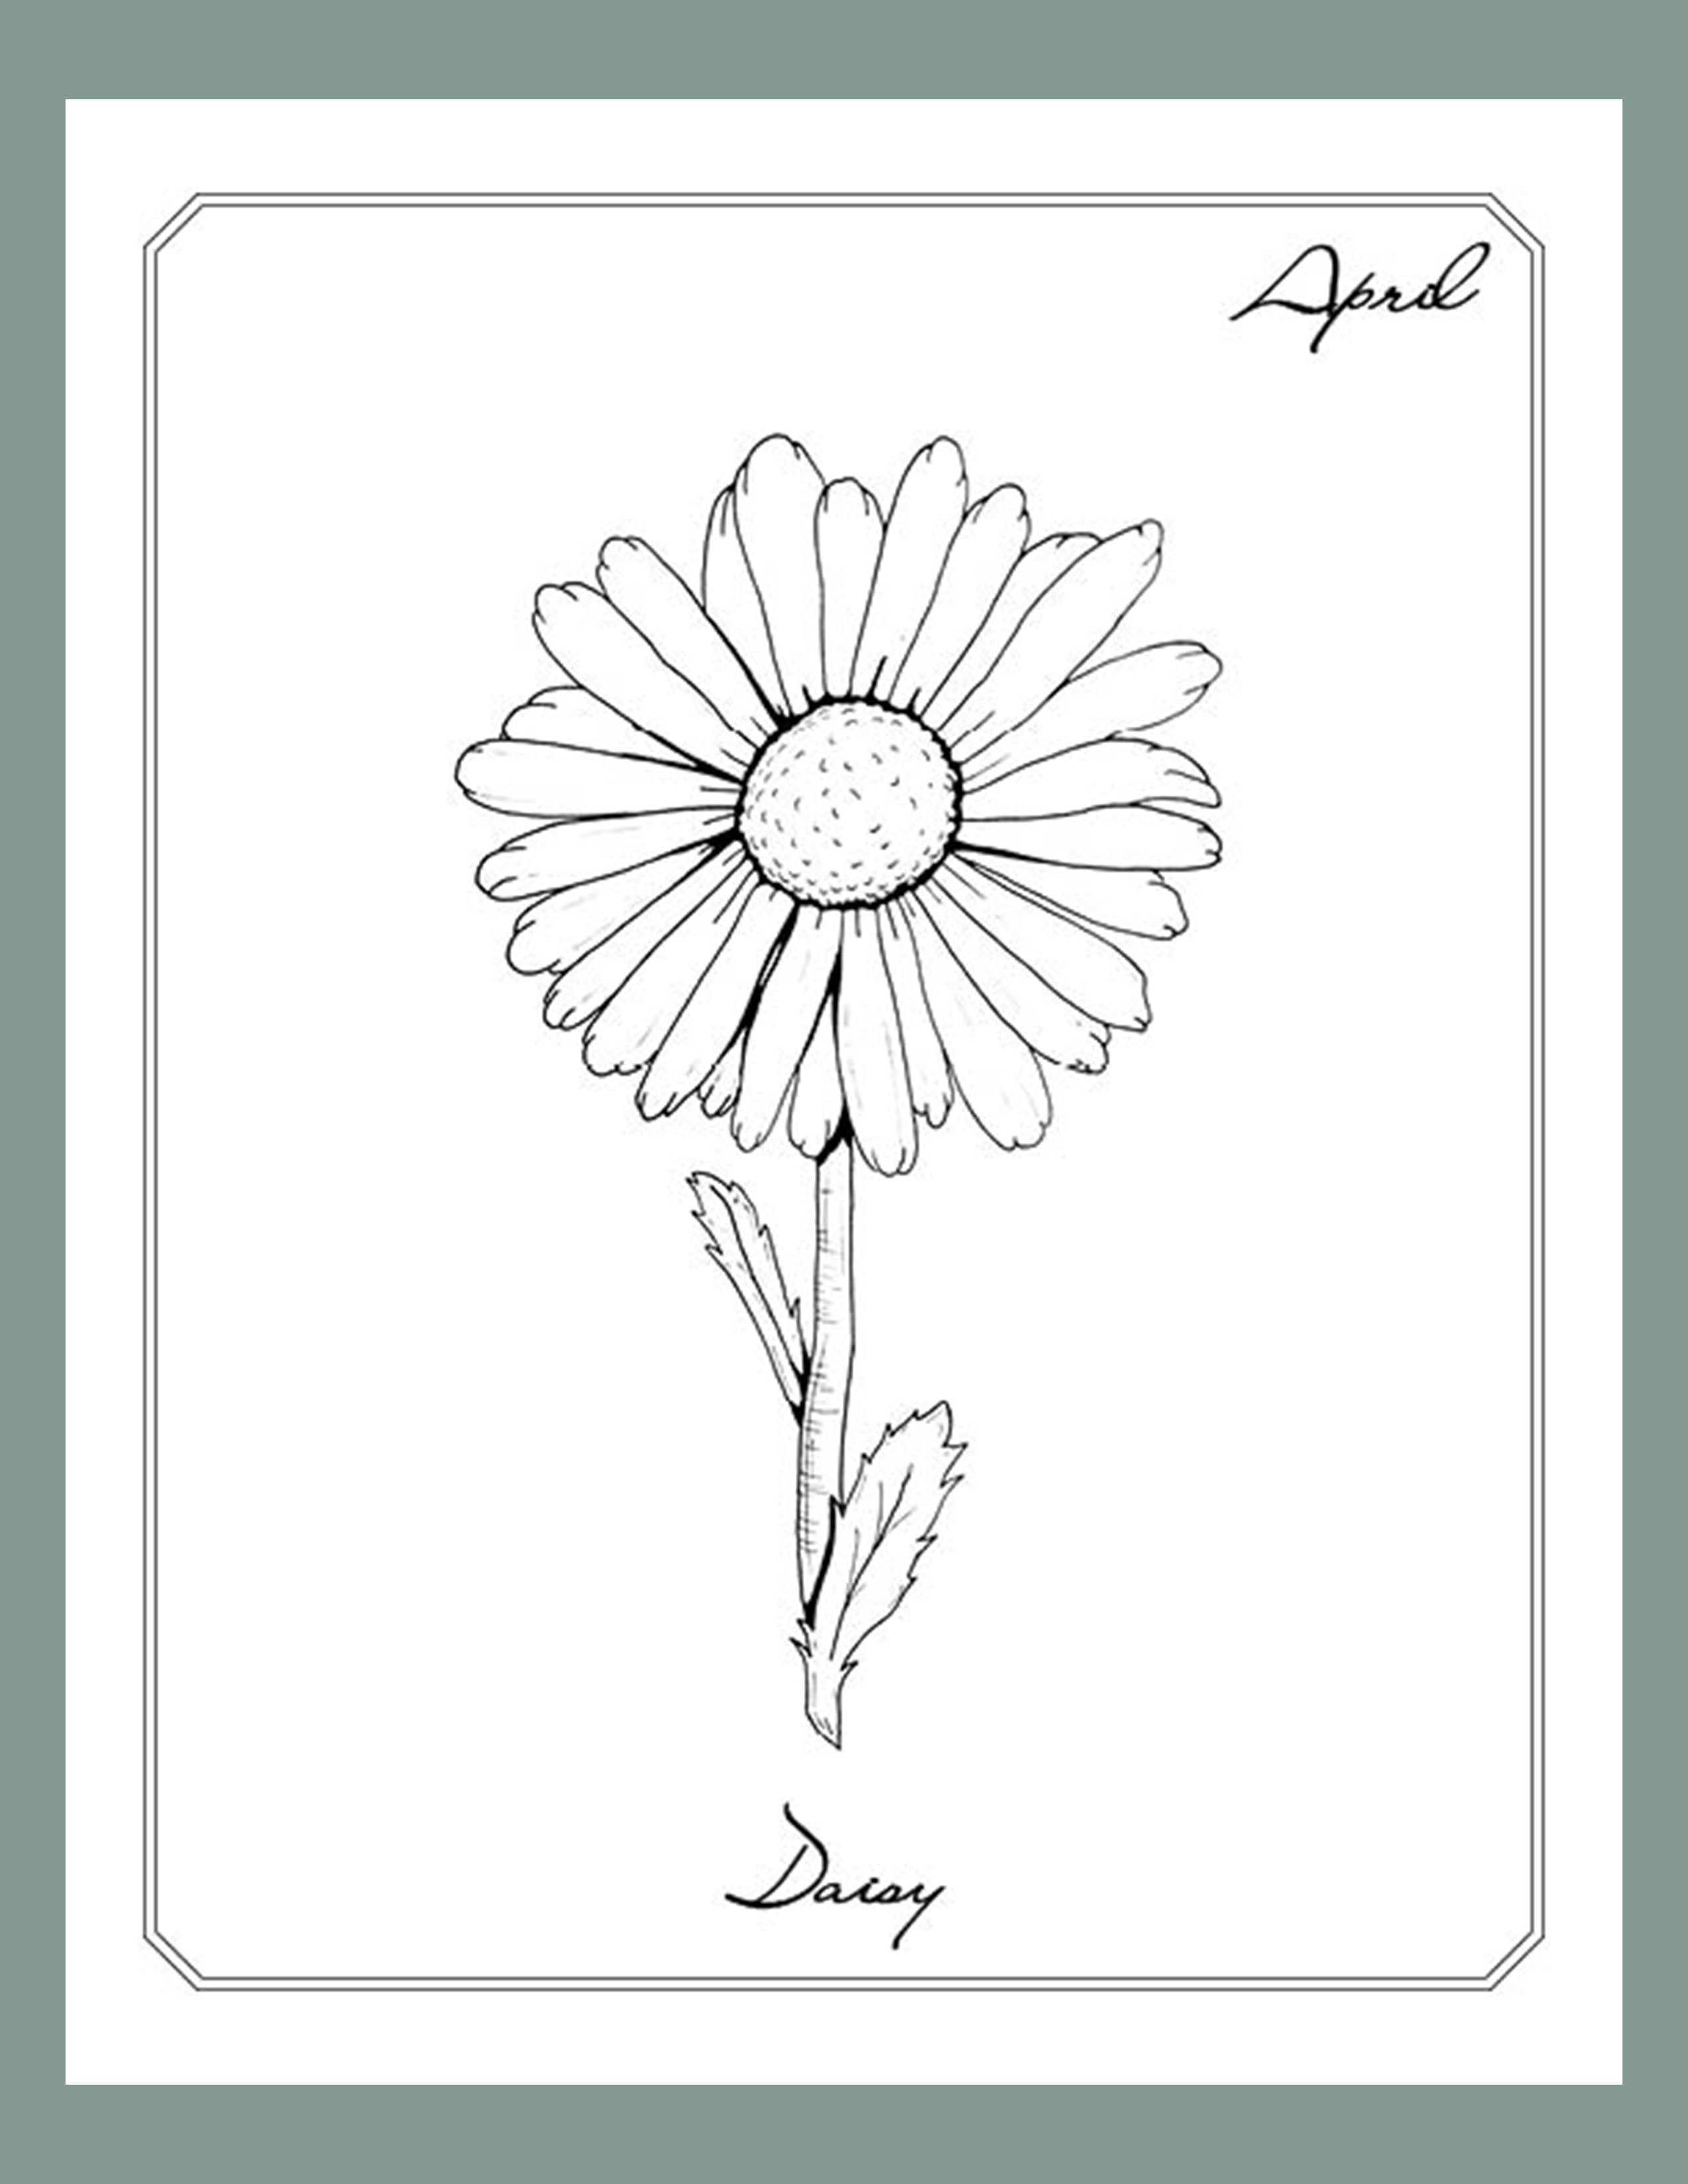 April Daisy Line Art